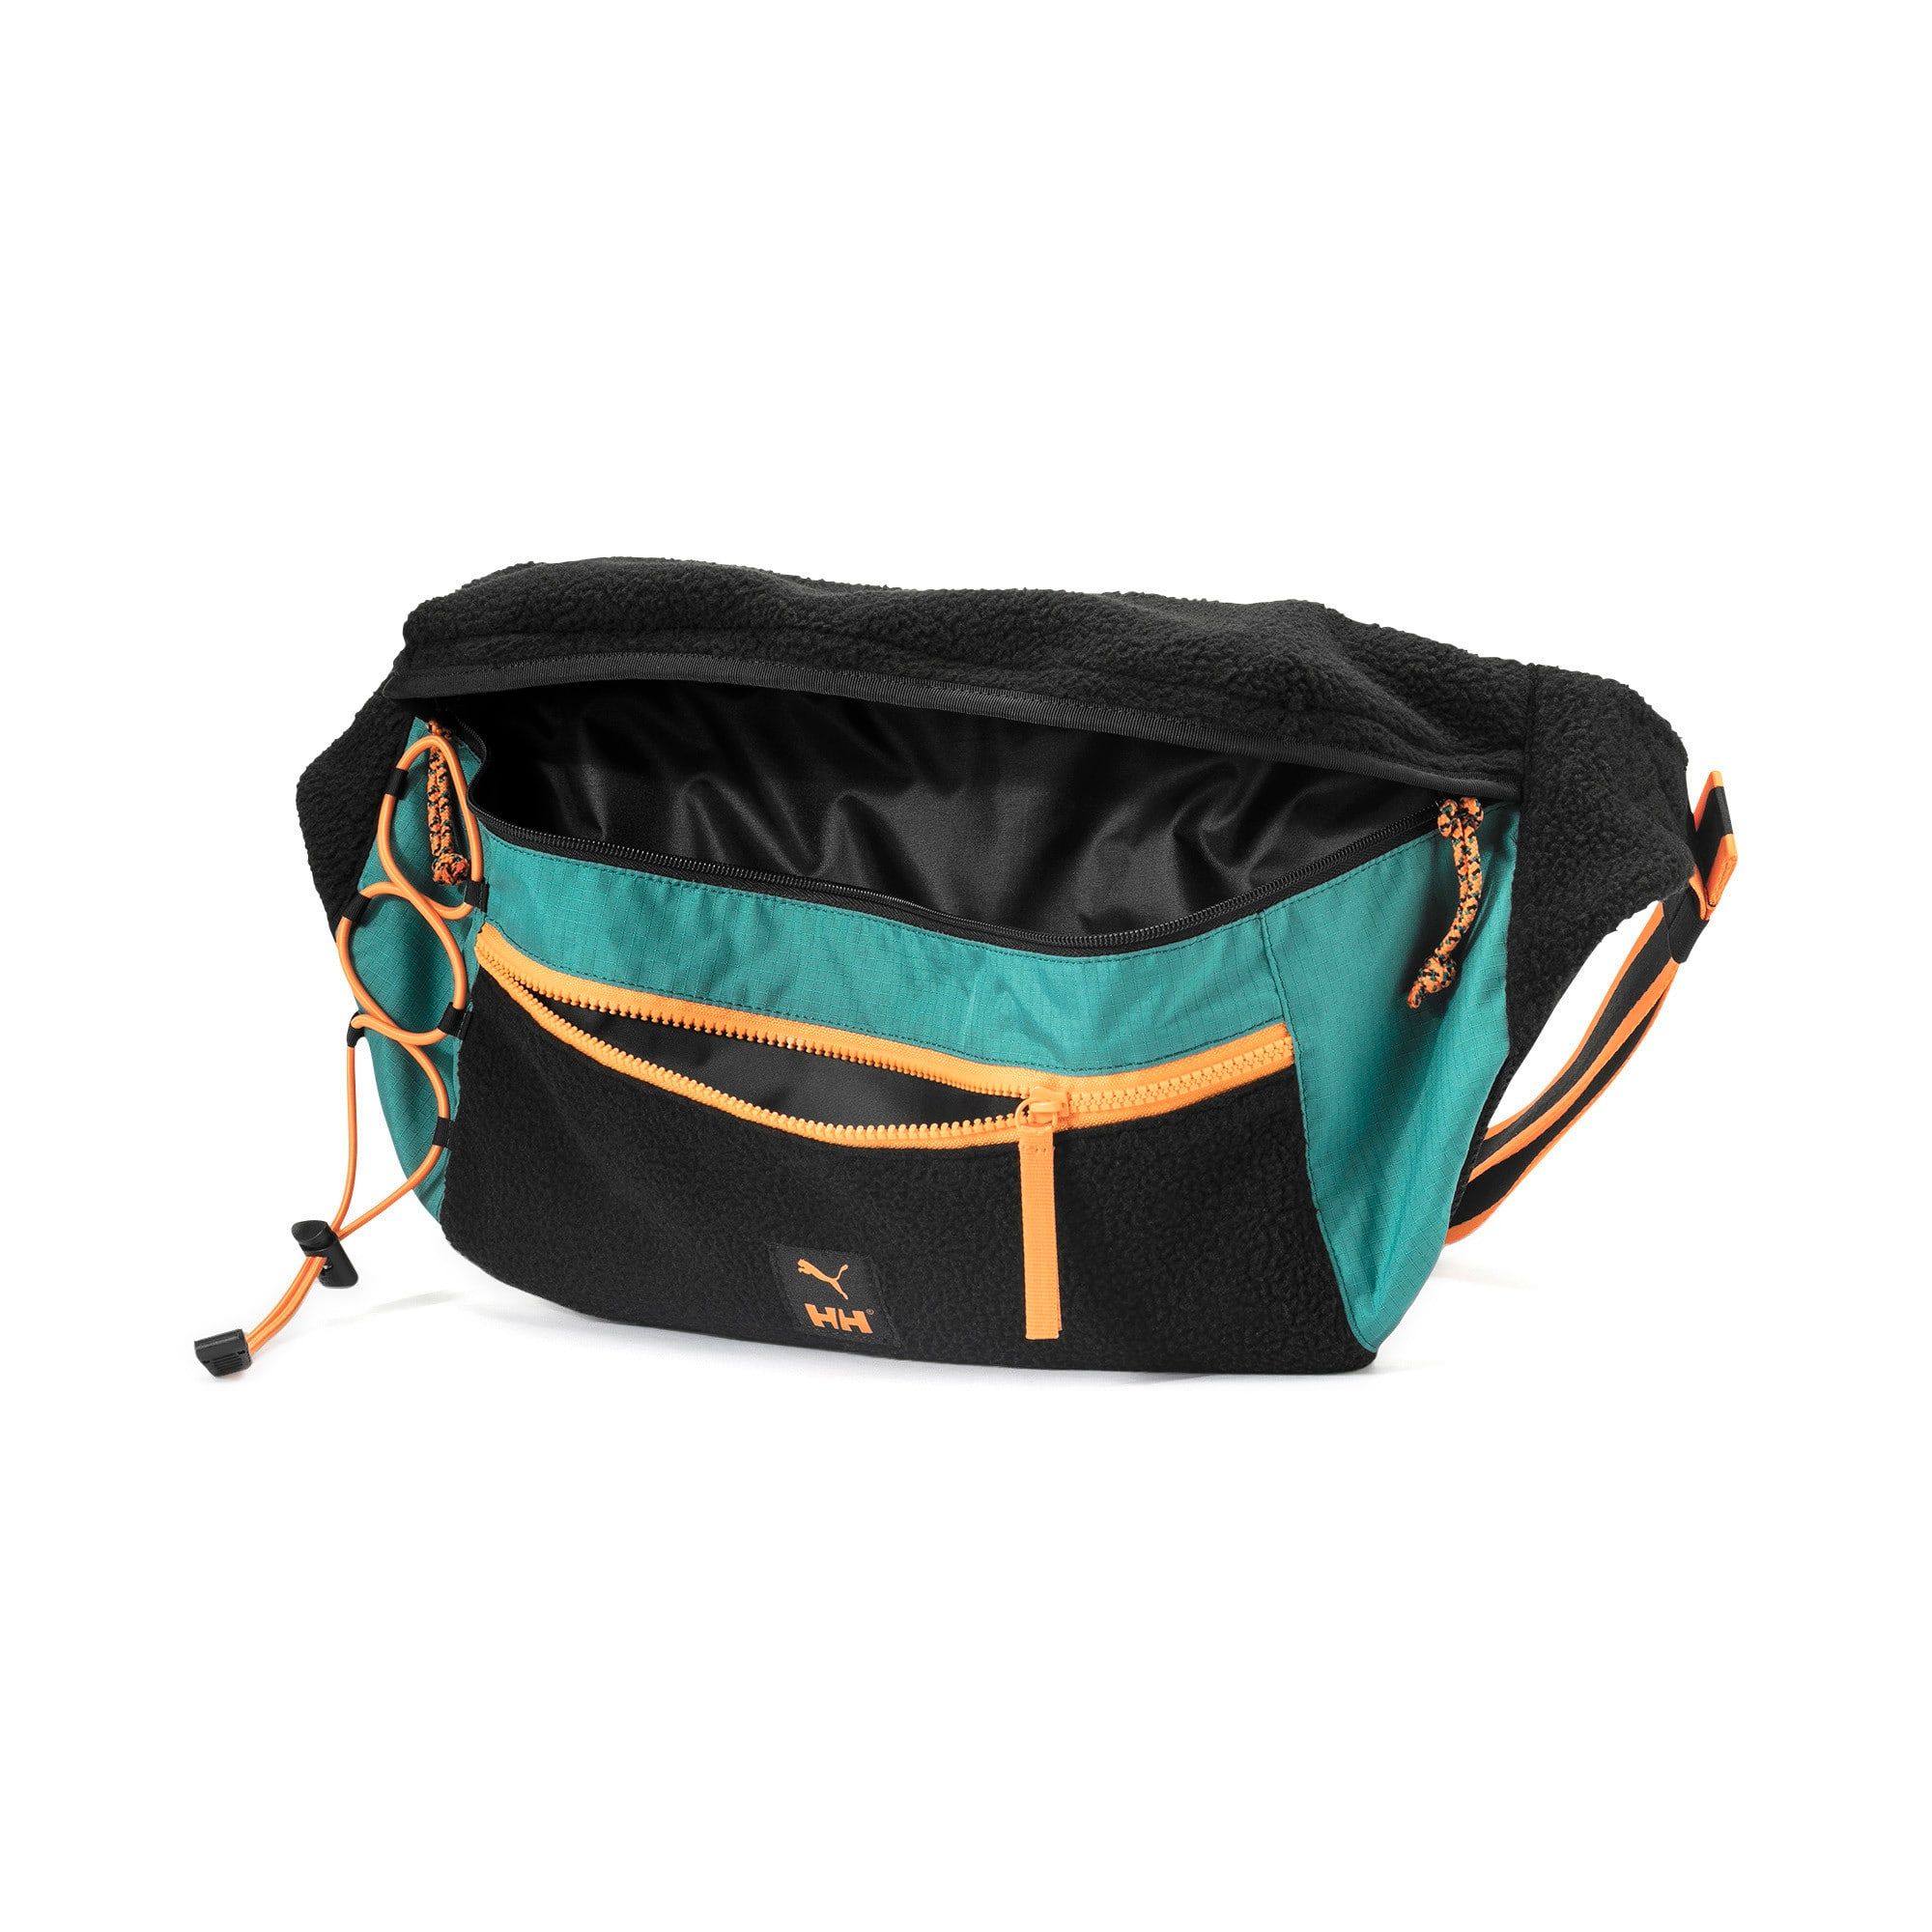 Thumbnail 3 of PUMA x HELLY HANSEN Oversized Gürteltasche, Puma Black-Teal Green, medium